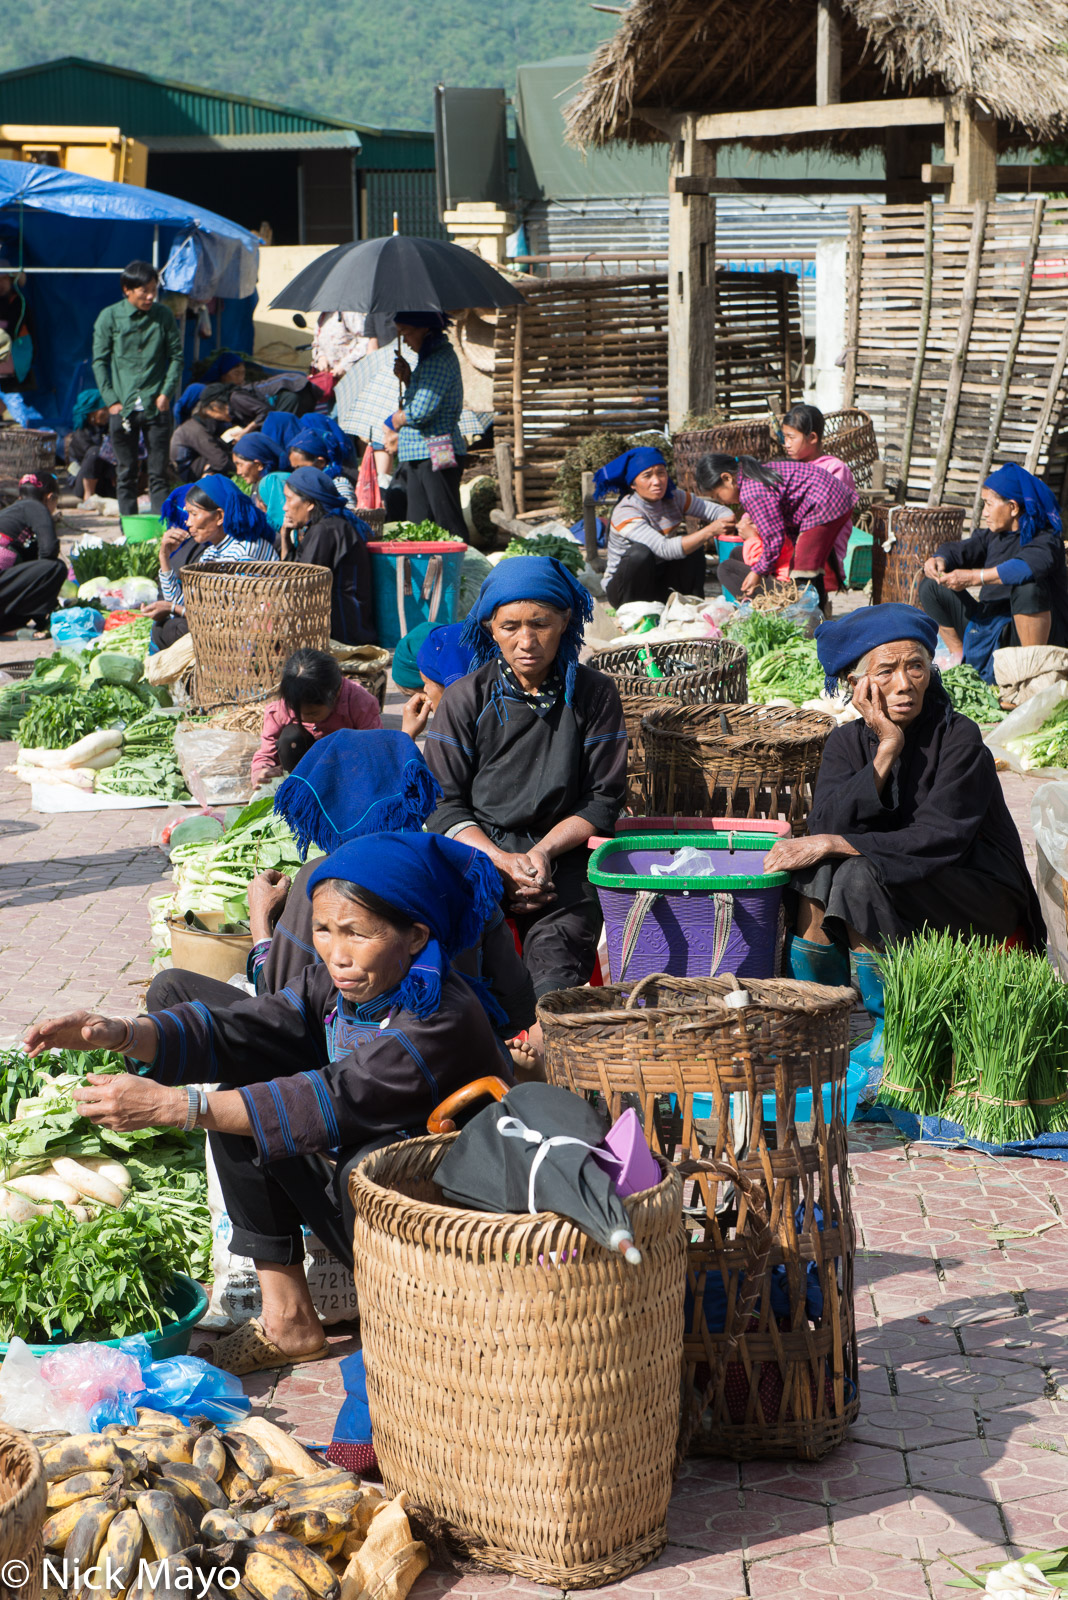 Basket, Hani, Lao Cai, Market, Selling, Vietnam, photo